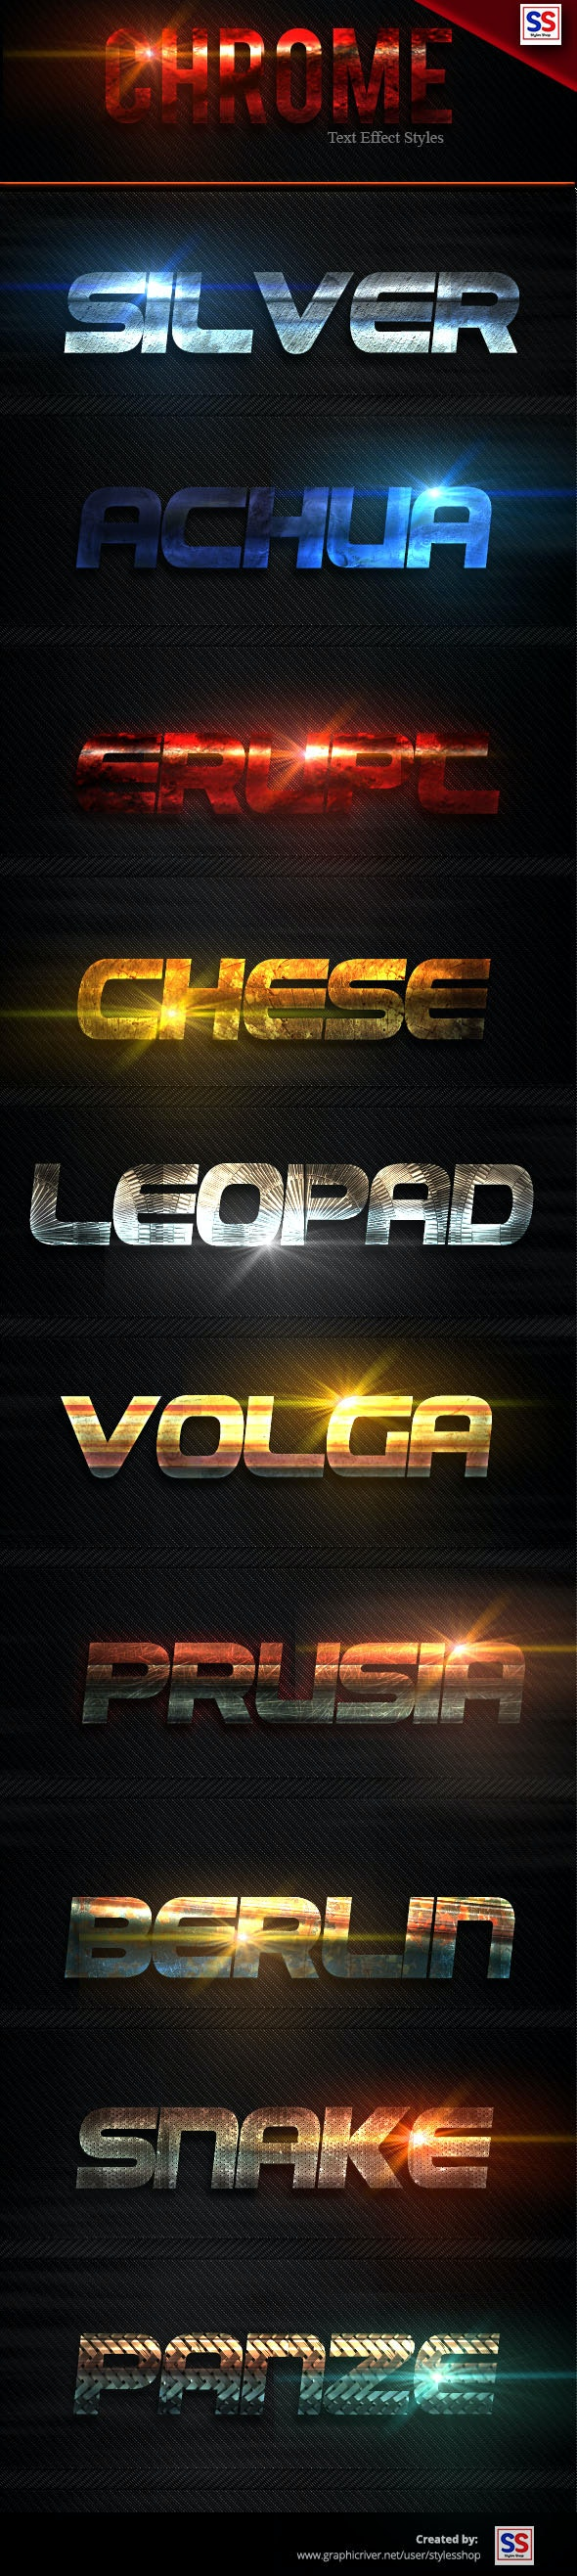 Chrome Text Effect Styles Vol 5 - Text Effects Styles